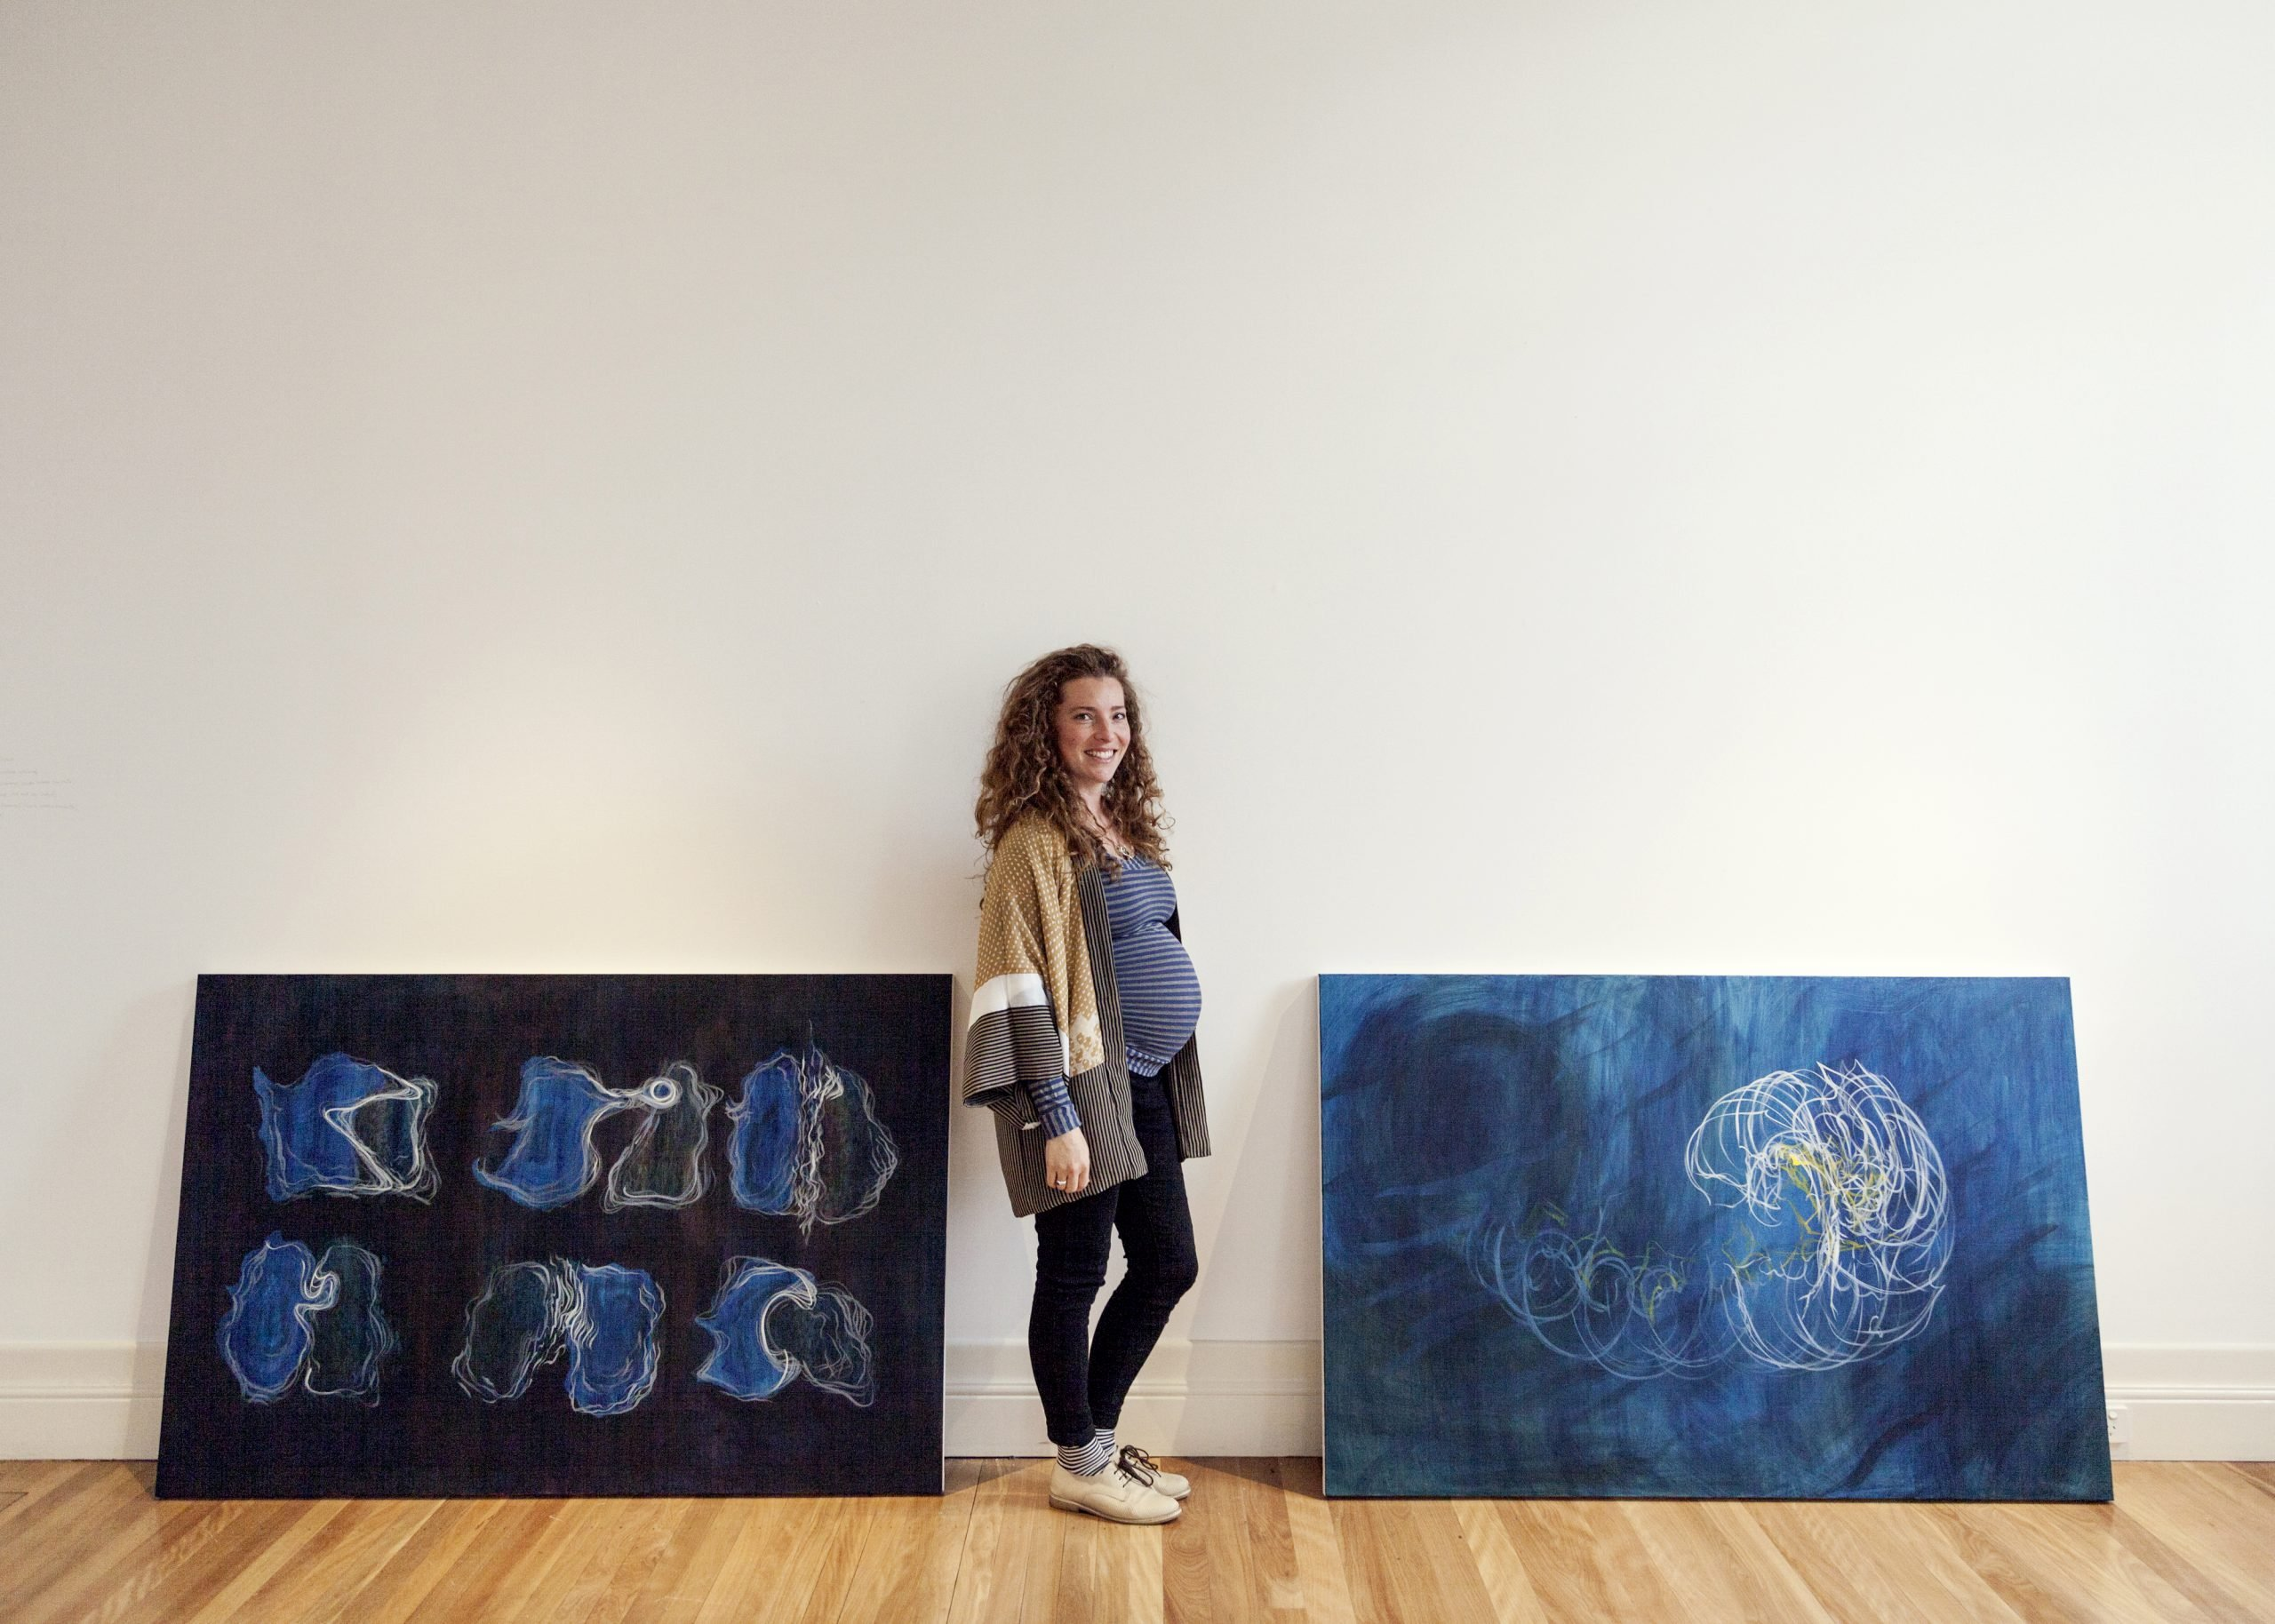 Candice pregnant standing next to two large paintings